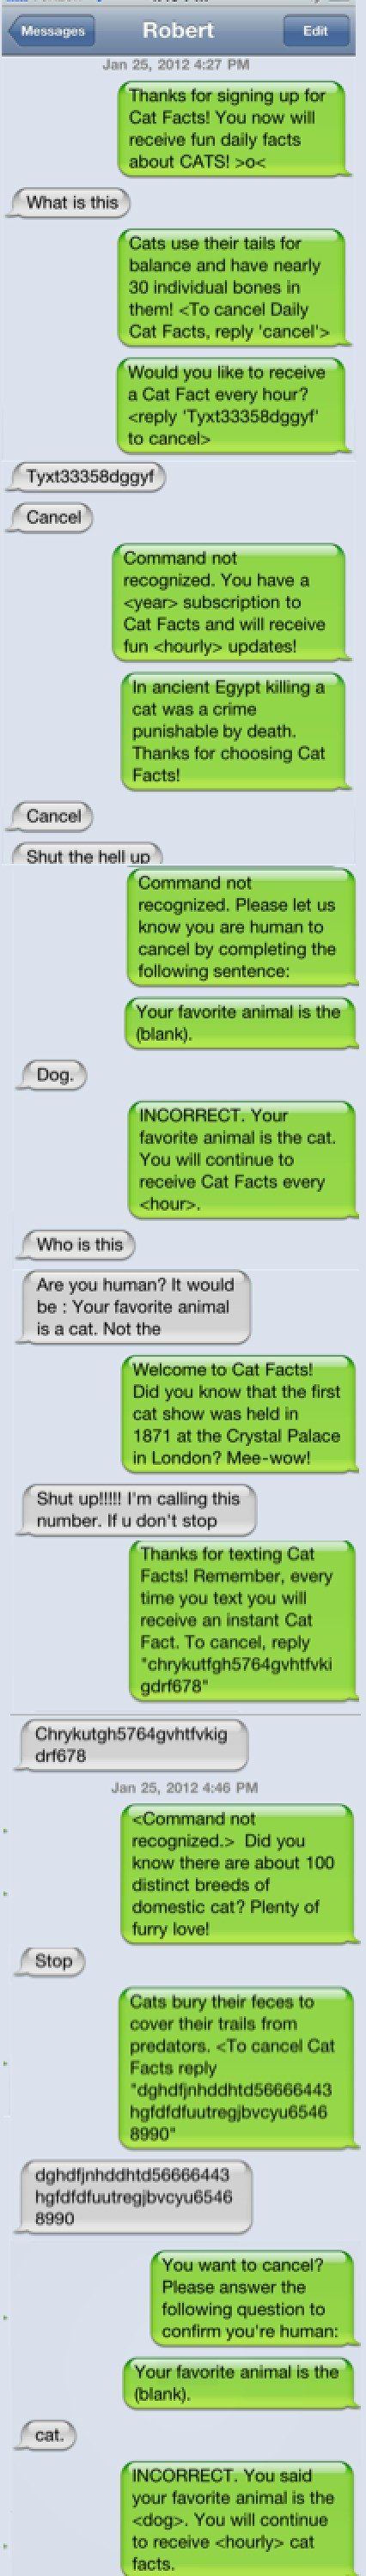 would you like to receive a cat fact every hour?